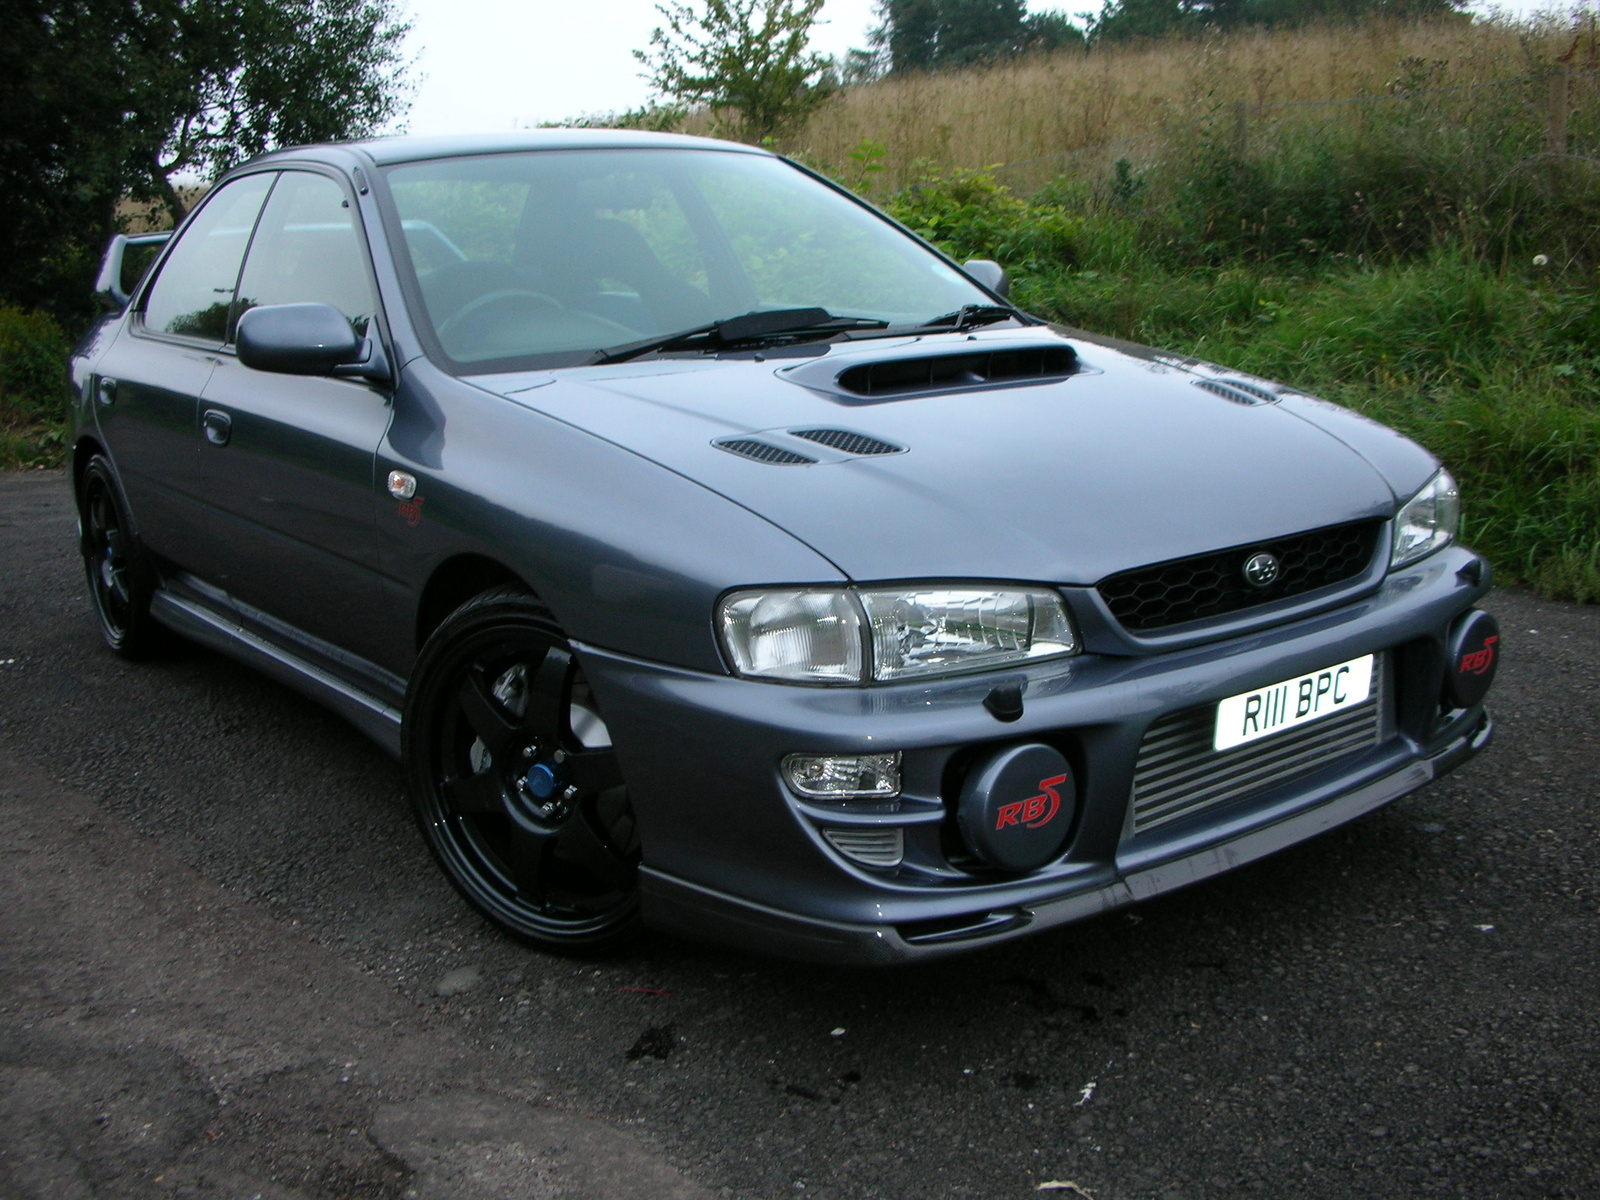 Subaru Impreza 1999 Review Amazing Pictures And Images